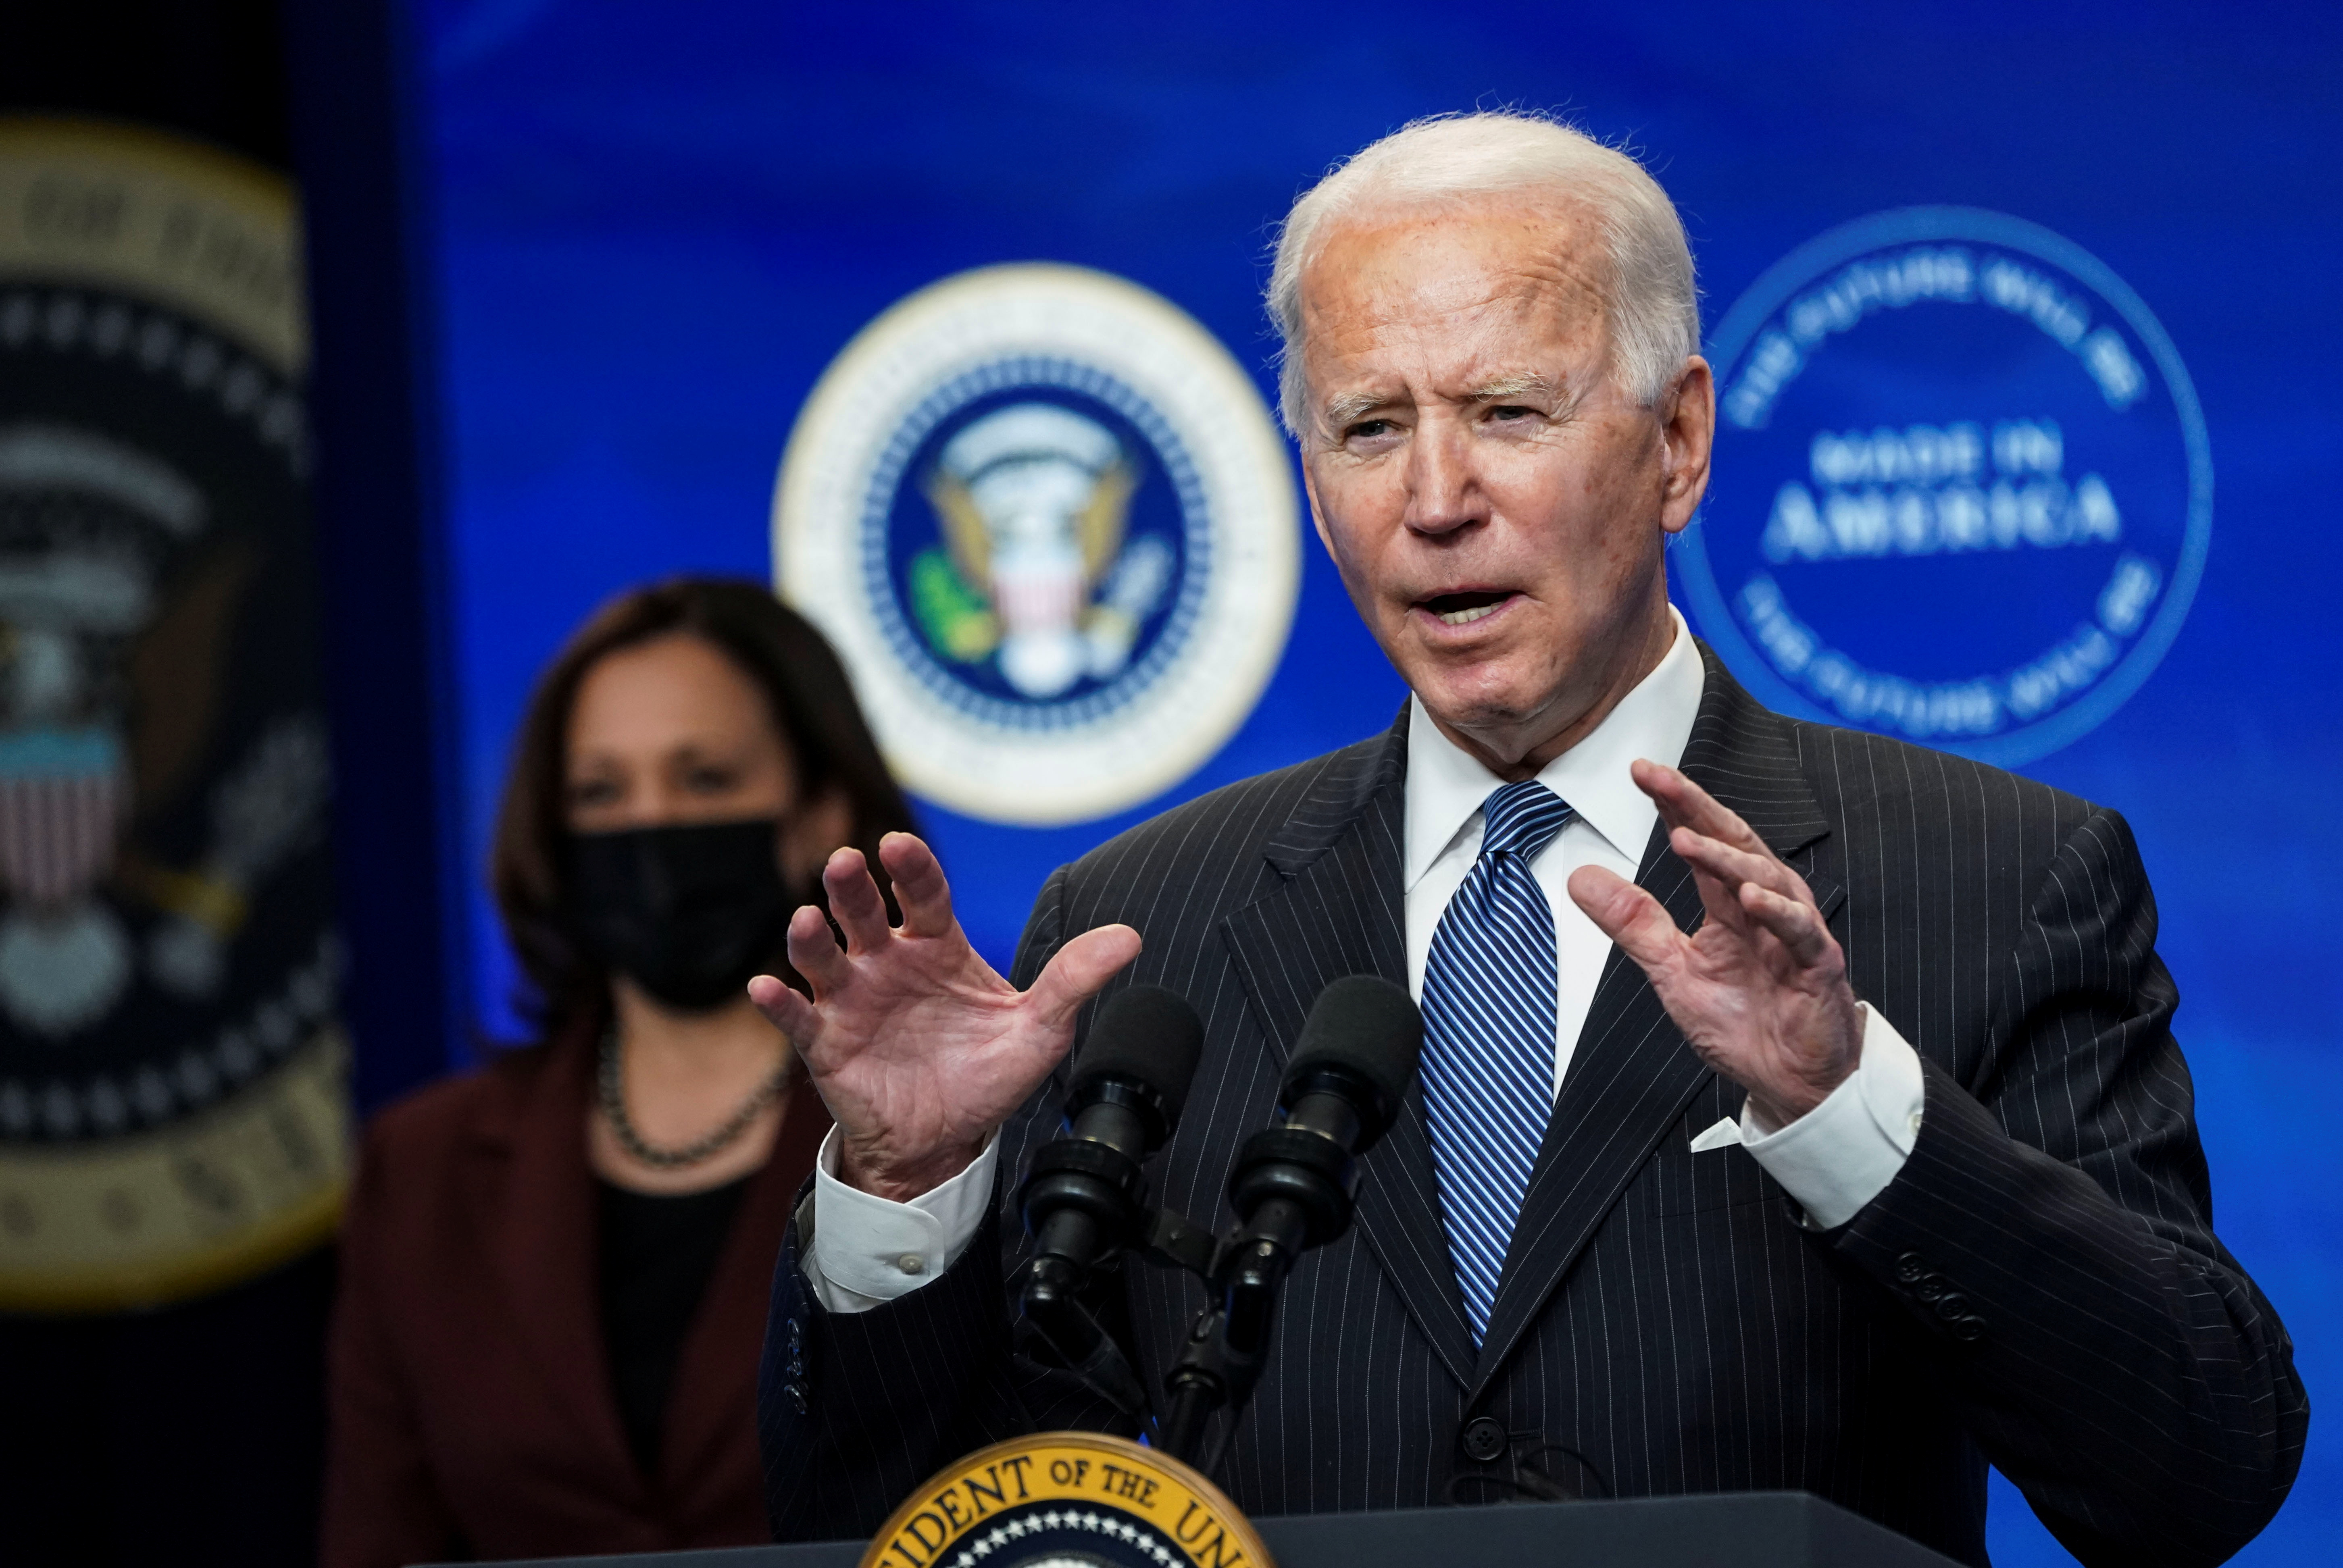 U.S. President Joe Biden speaks about administration plans to strengthen American manufacturing as Vice President Kamala Harris listens in the South Court Auditorium at the White House in Washington, U.S., January 25, 2021. REUTERS/Kevin Lamarque